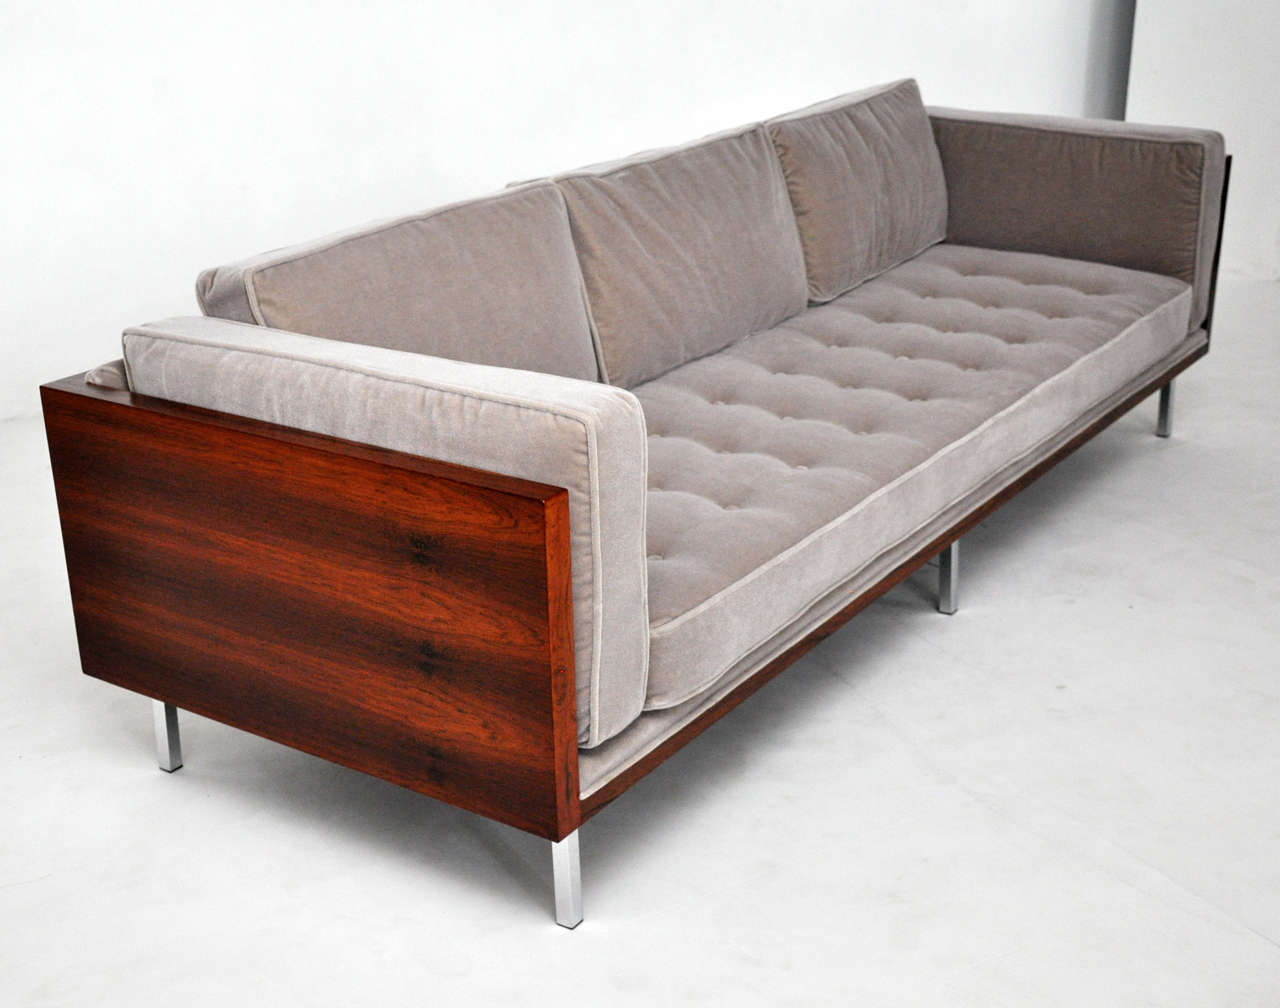 8ft Rosewood Case Sofa By Milo Baughman Fully Red Beautiful Wood Grain